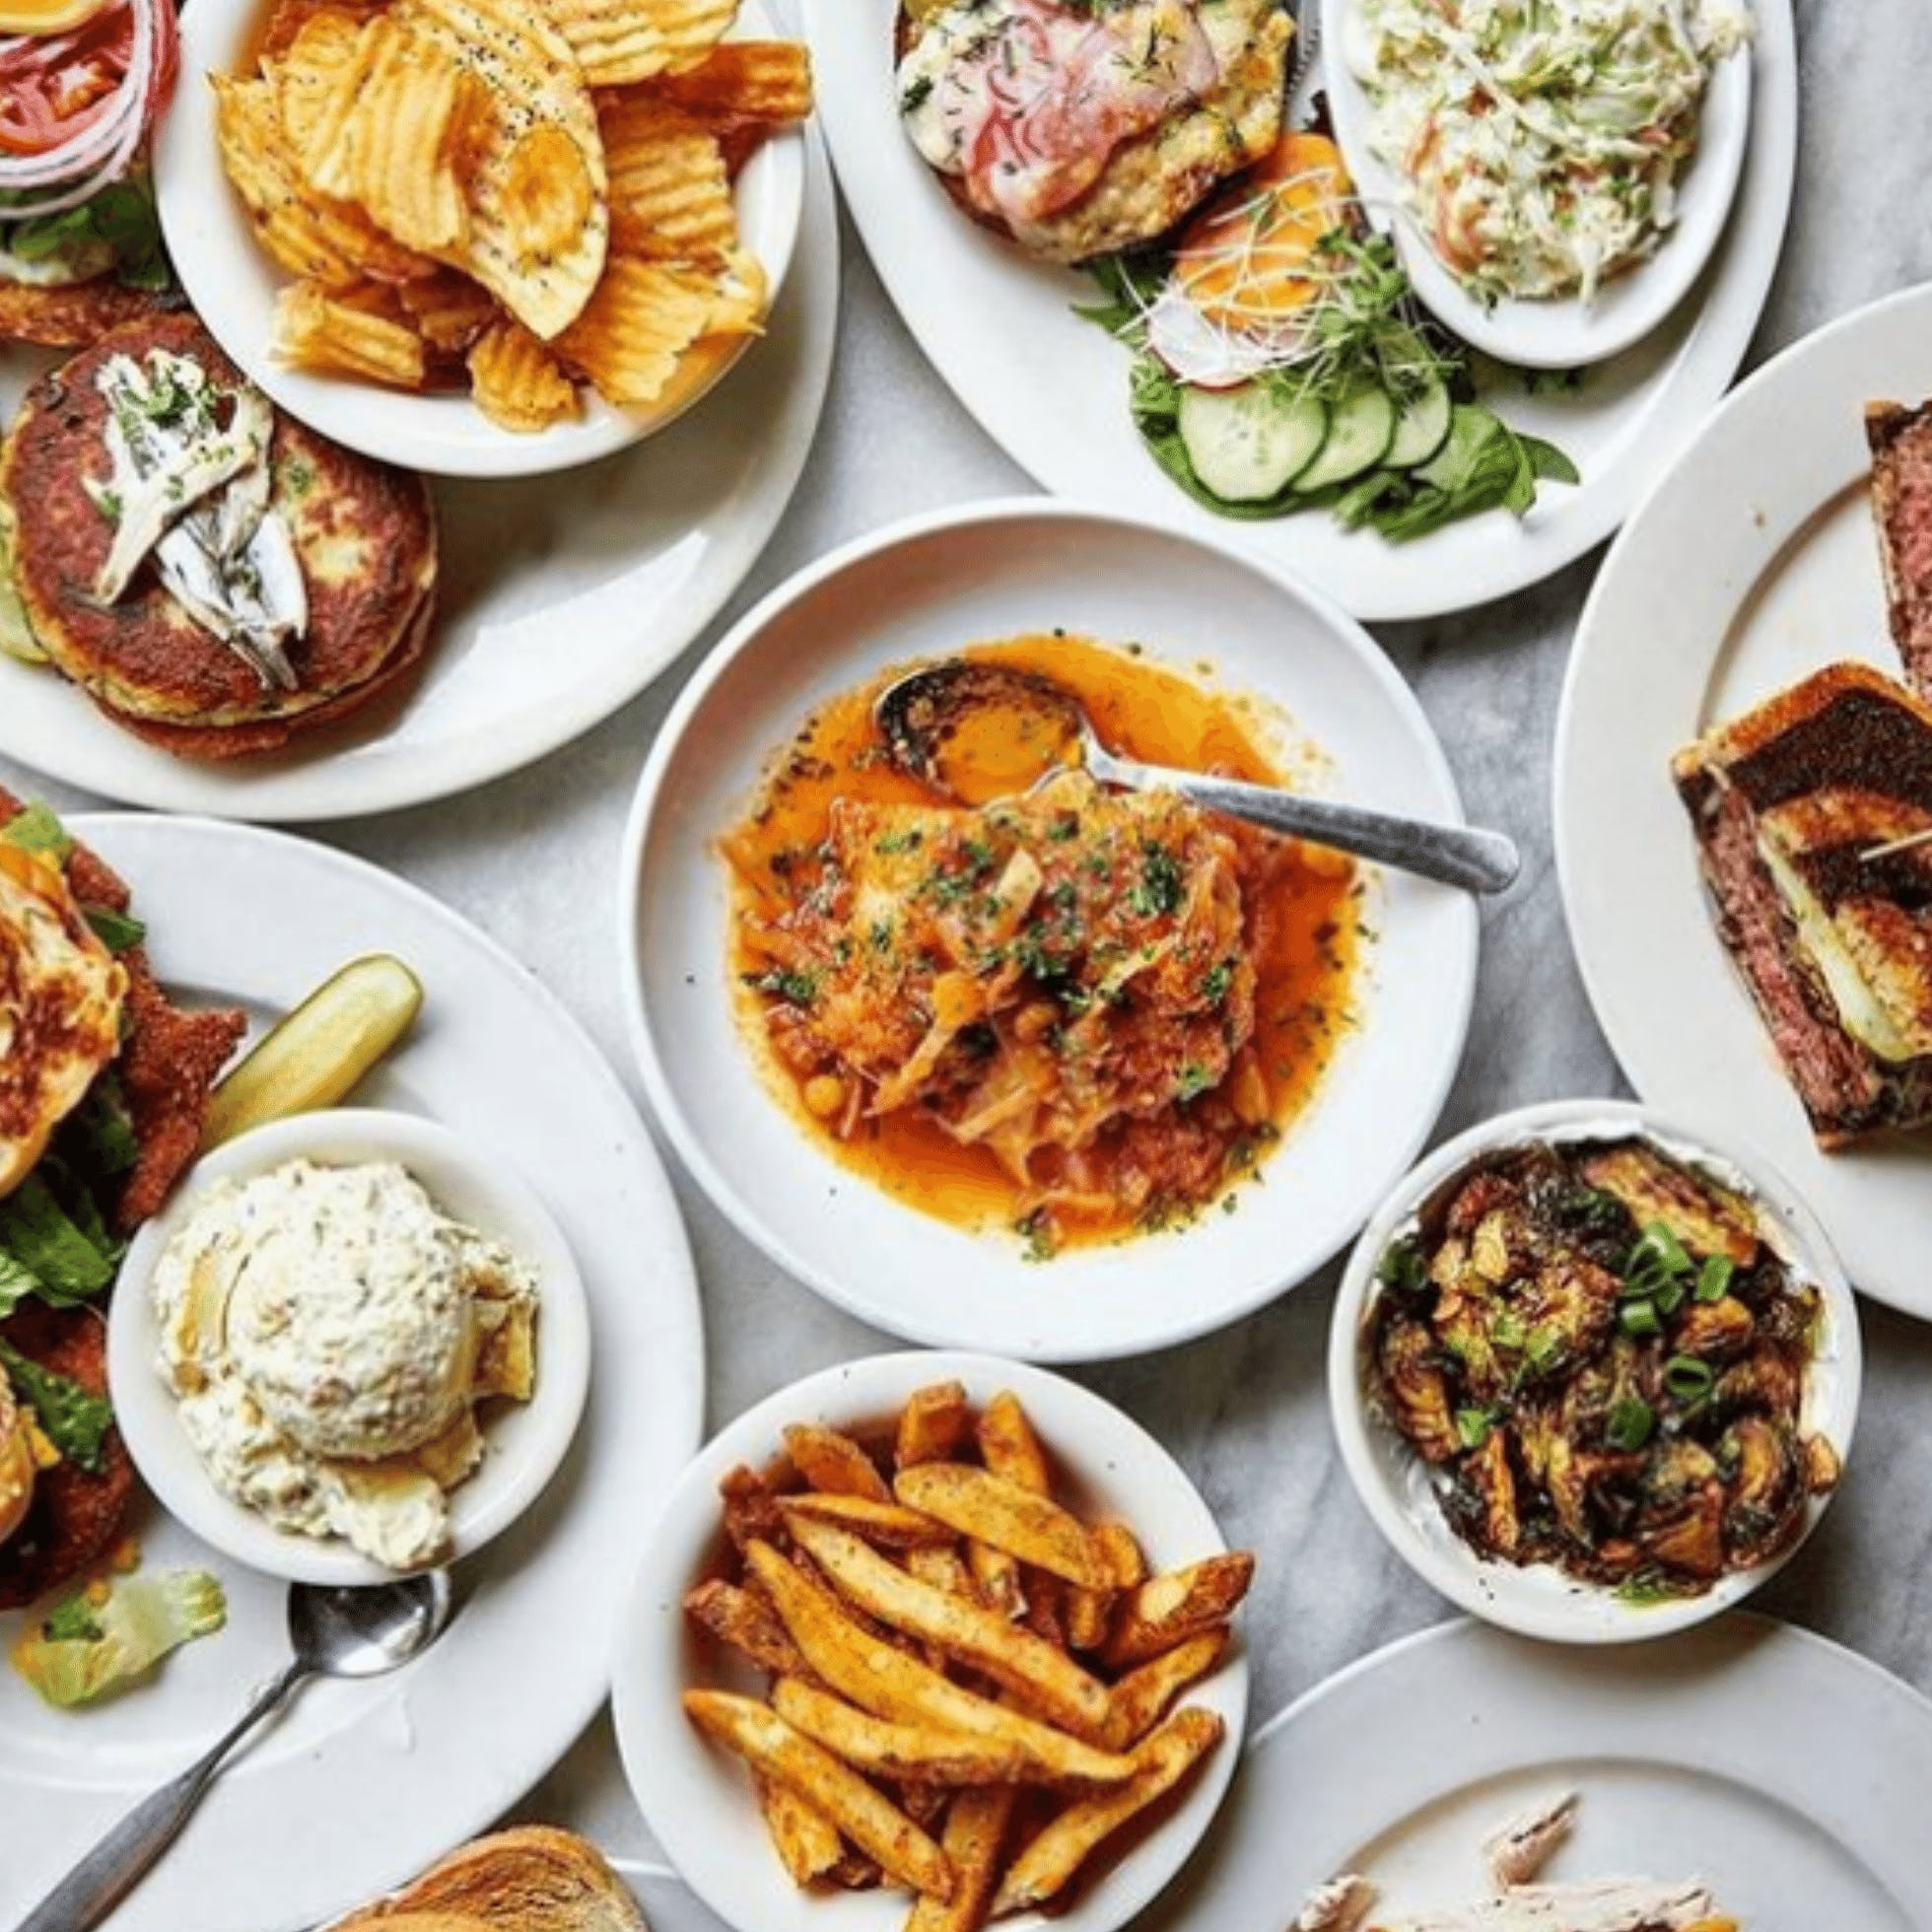 16 Lunch Specials and Spots to Eat at in Downtown Richmond